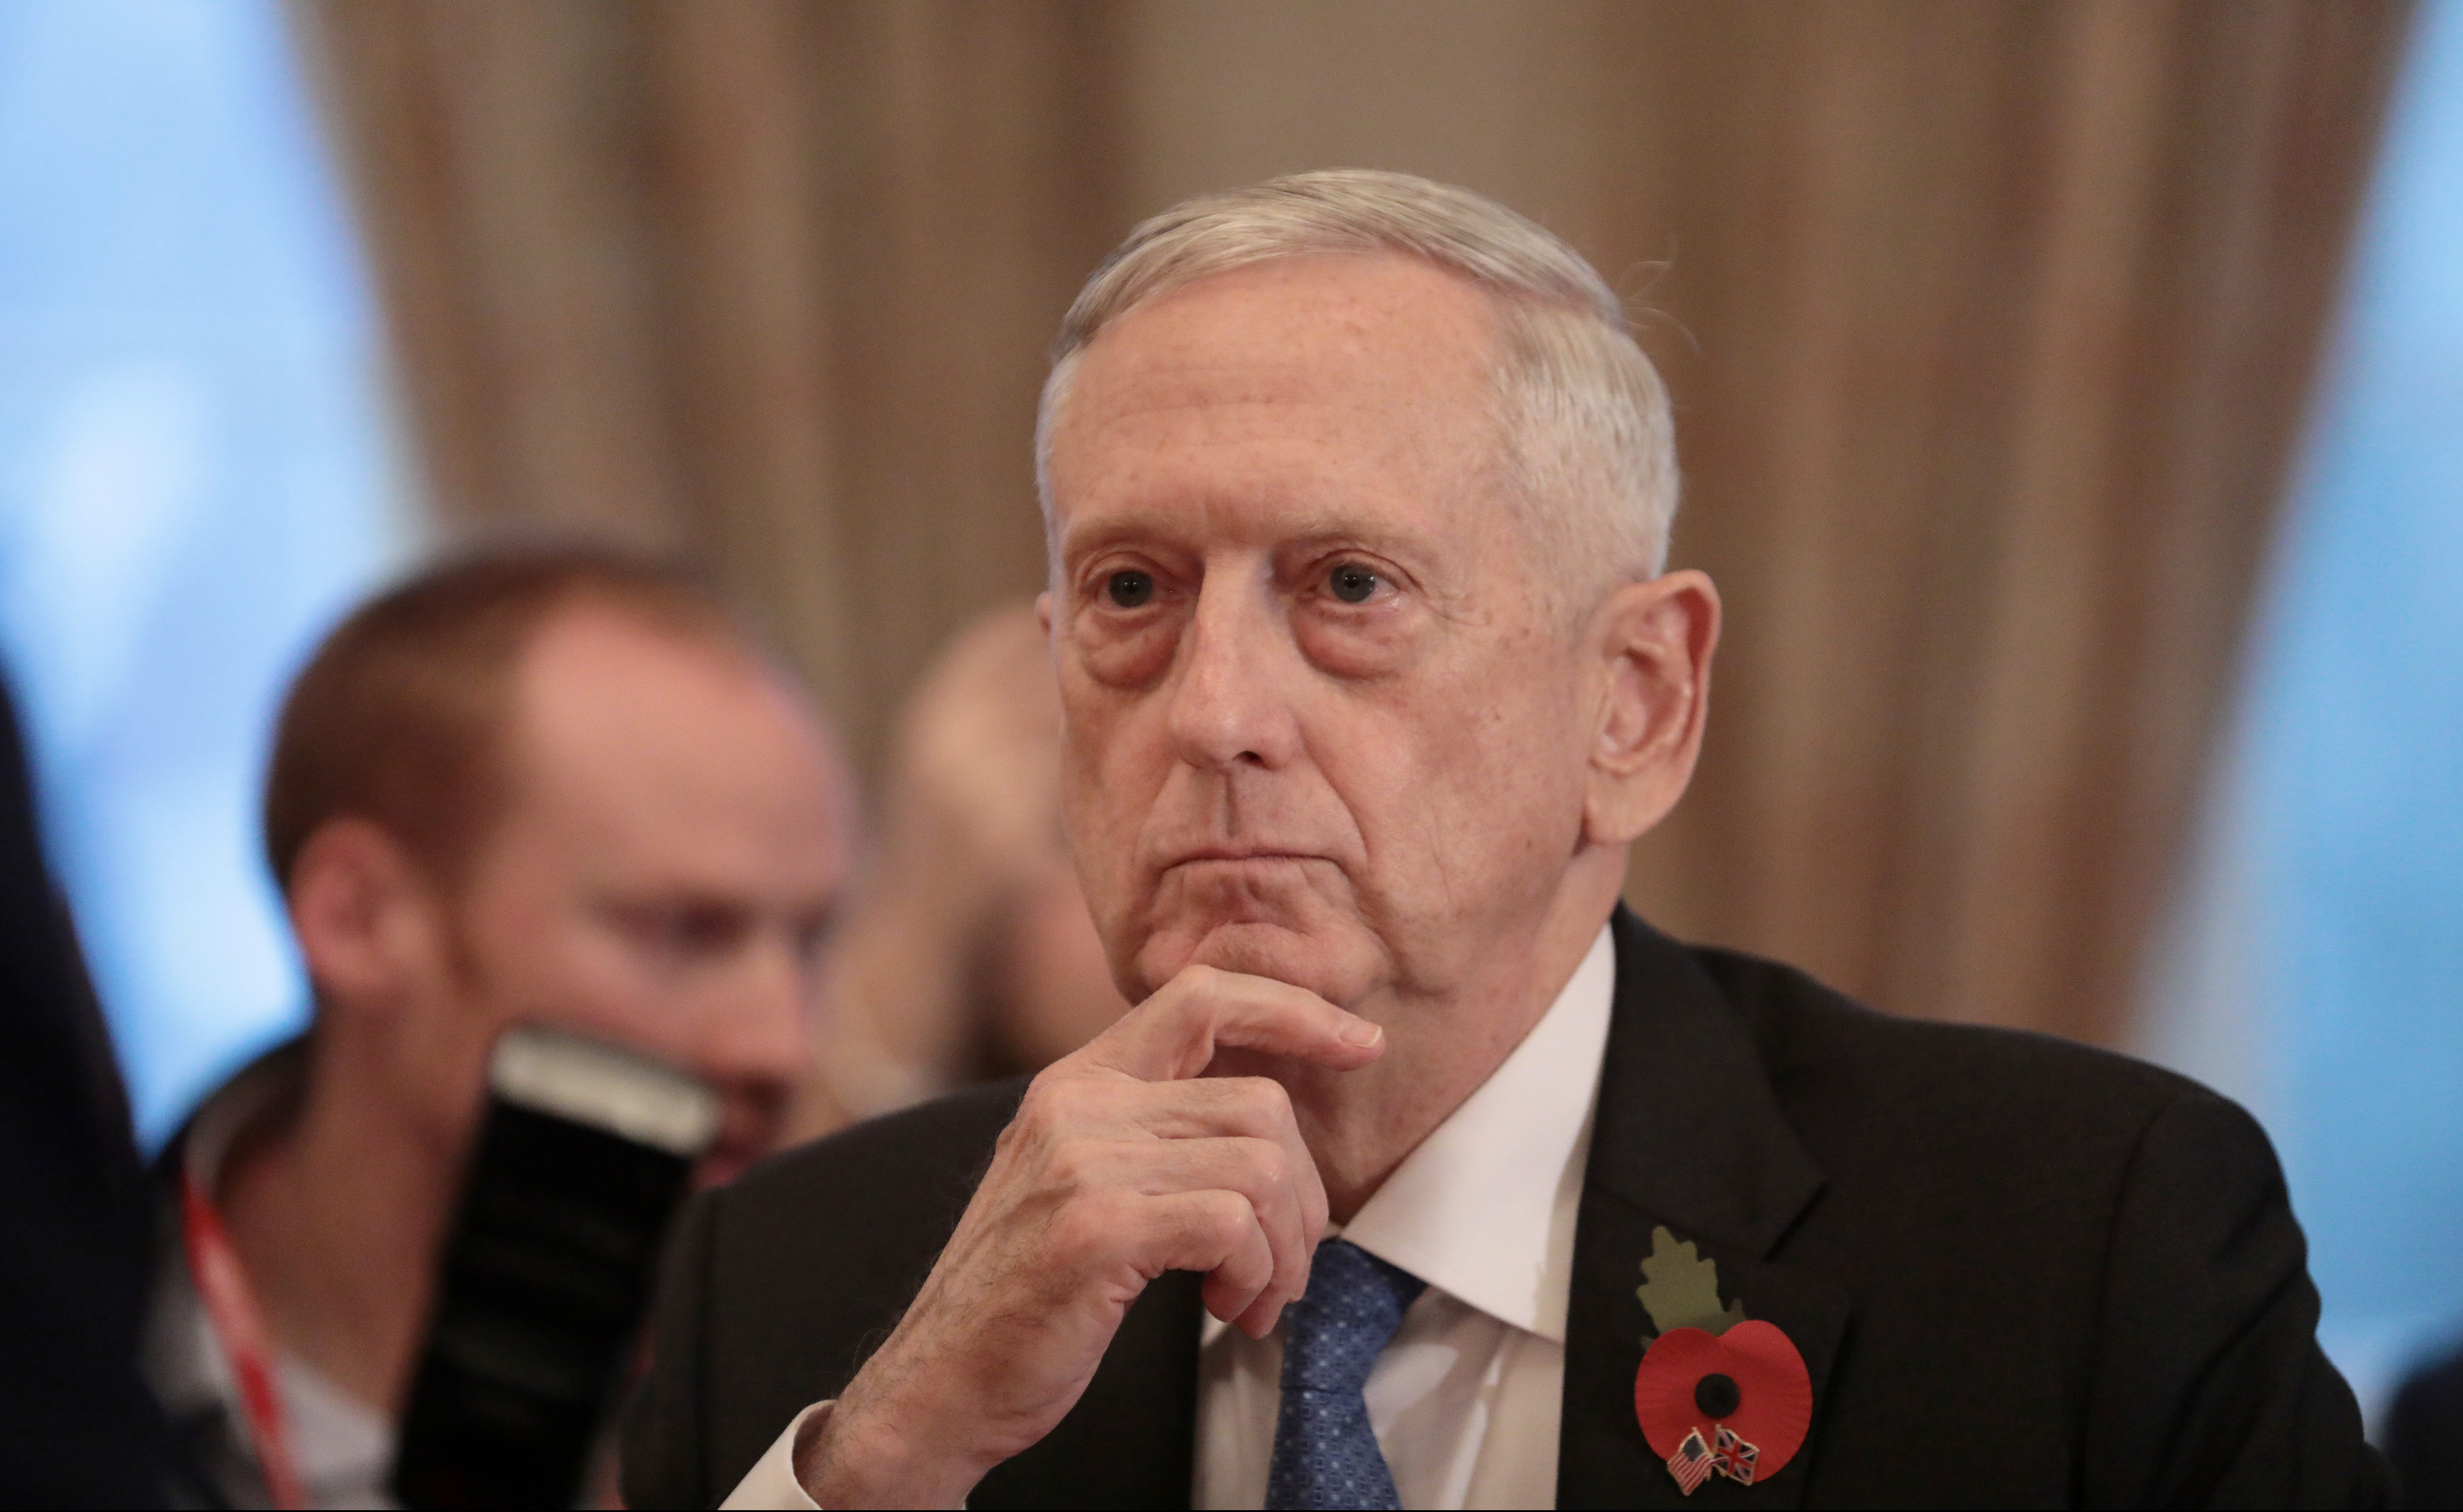 U.S. Secretary for Defense, Jim Mattis, sits opposite Britain's Secretary of State for Defence, Gavin Williamson, before a meeting at the Ministry of Defence (MoD) in central London, Britain November 10, 2017. REUTERS/Simon Dawson - RC1A8163C750